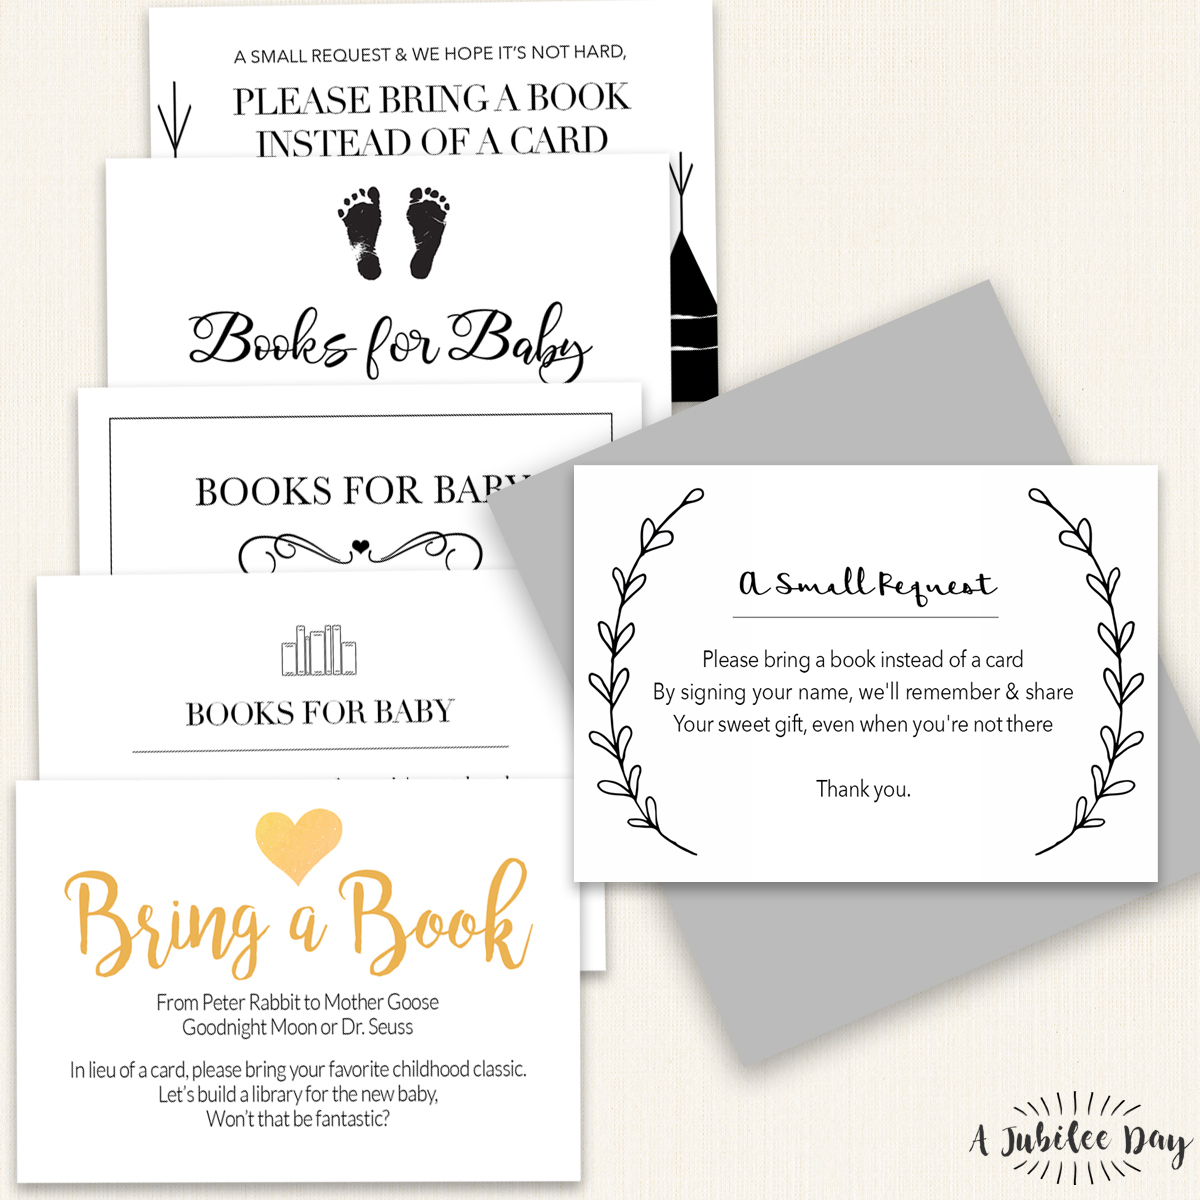 Bring Book Request Card (6 Designs!) - A Jubilee Day - Bring A Book Instead Of A Card Free Printable